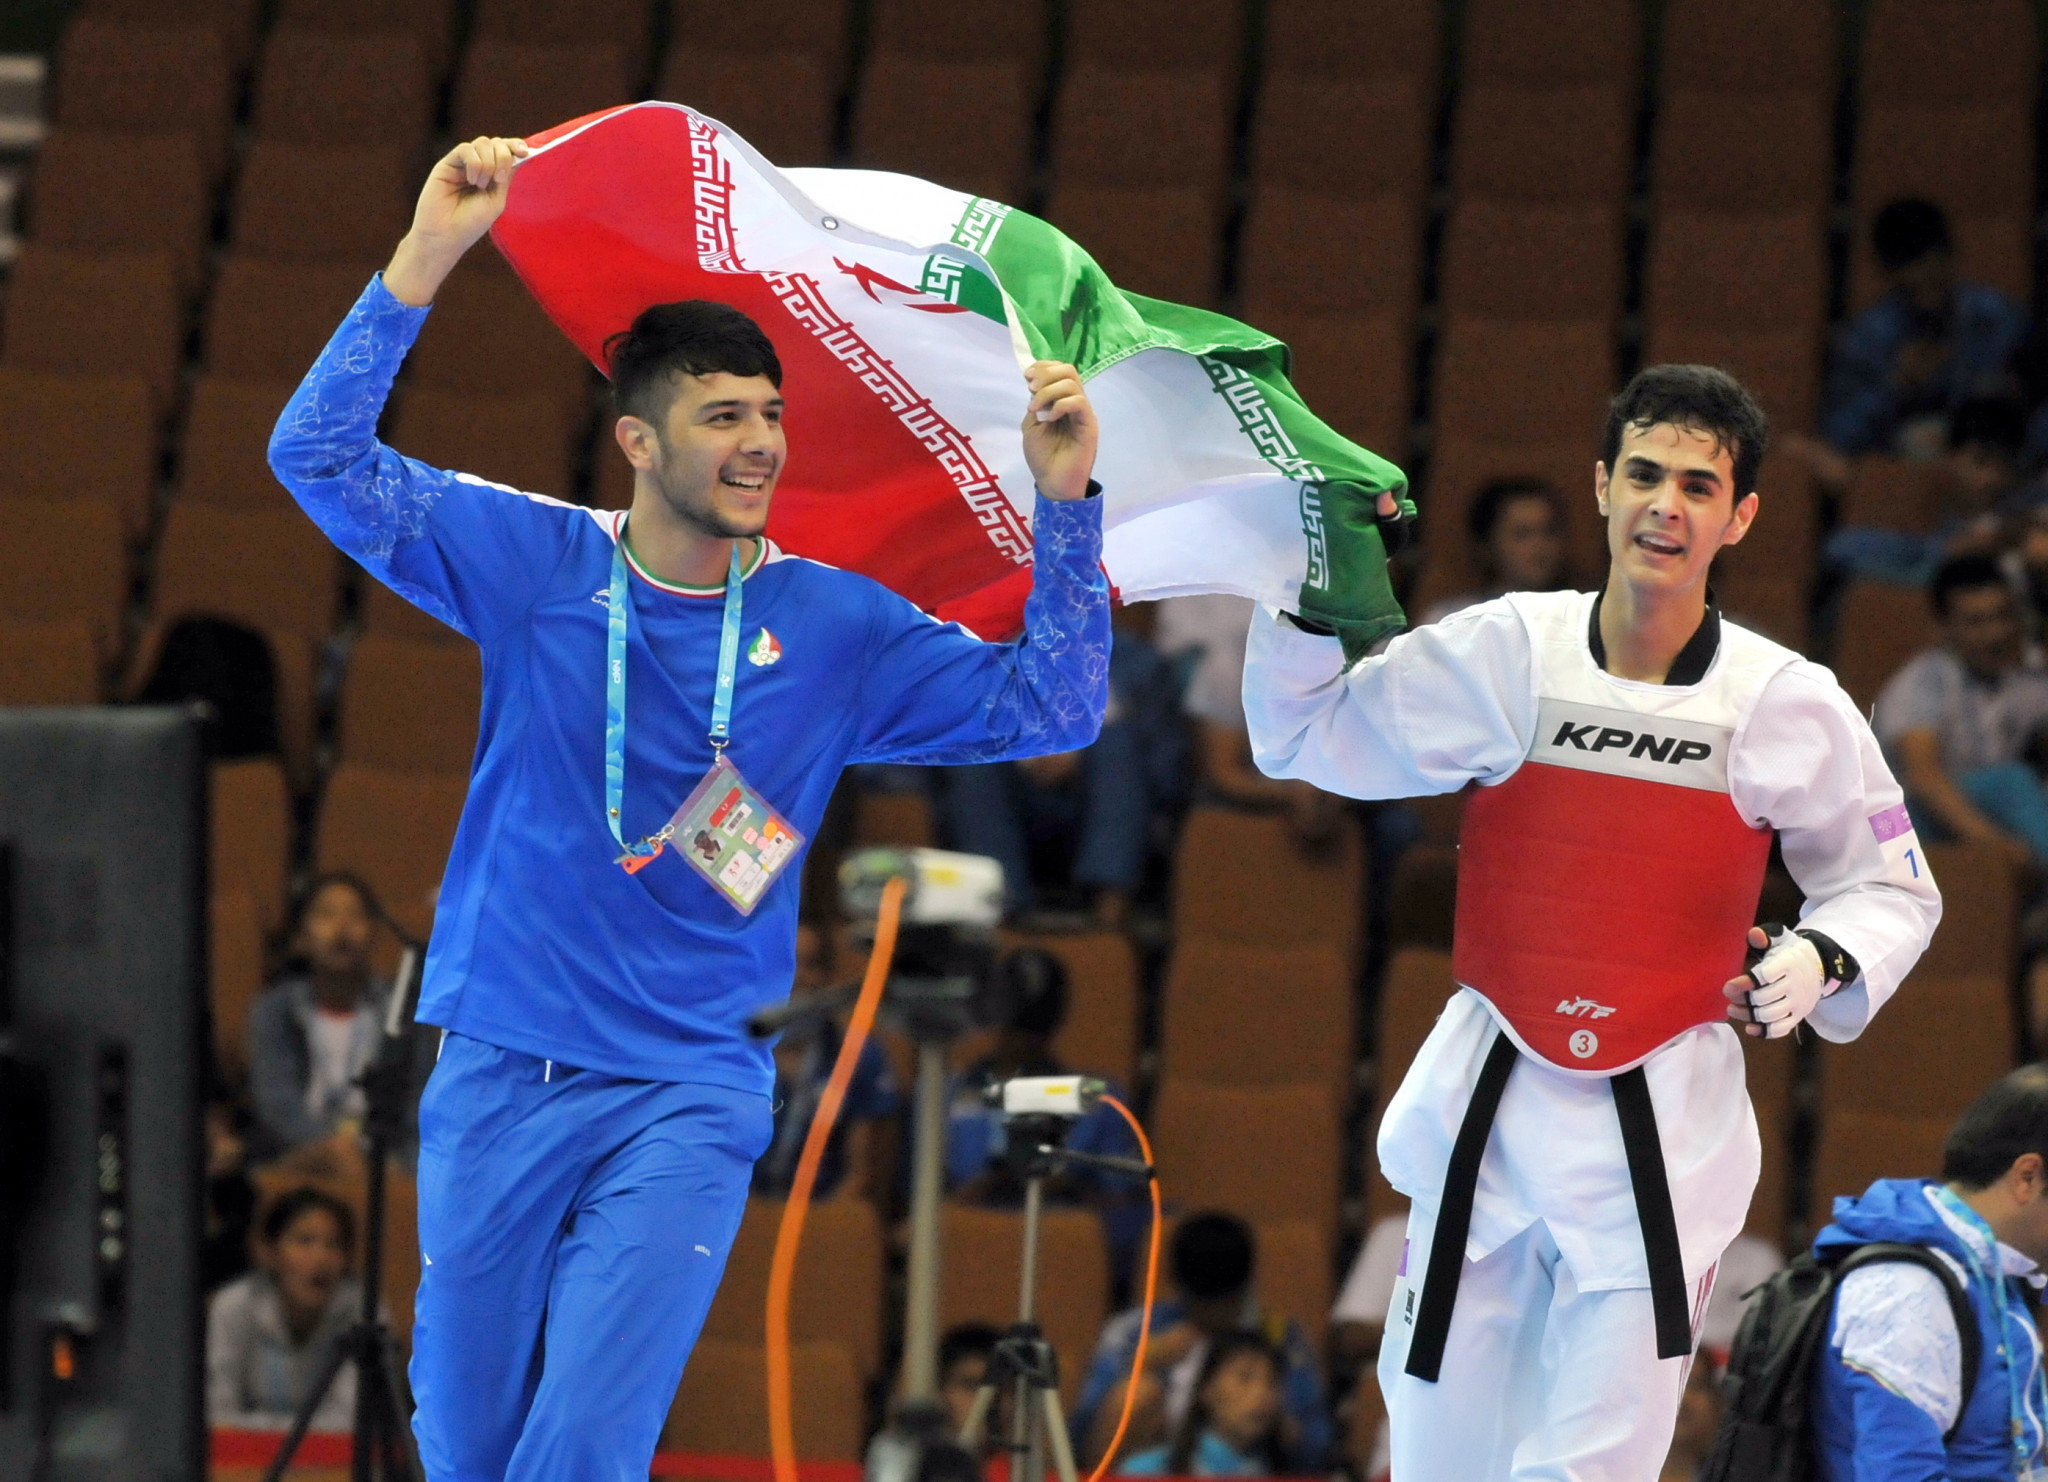 Mirhashem Hosseini, right, was one of two Iranian taekwondo gold medallists this evening ©Taipei 2017